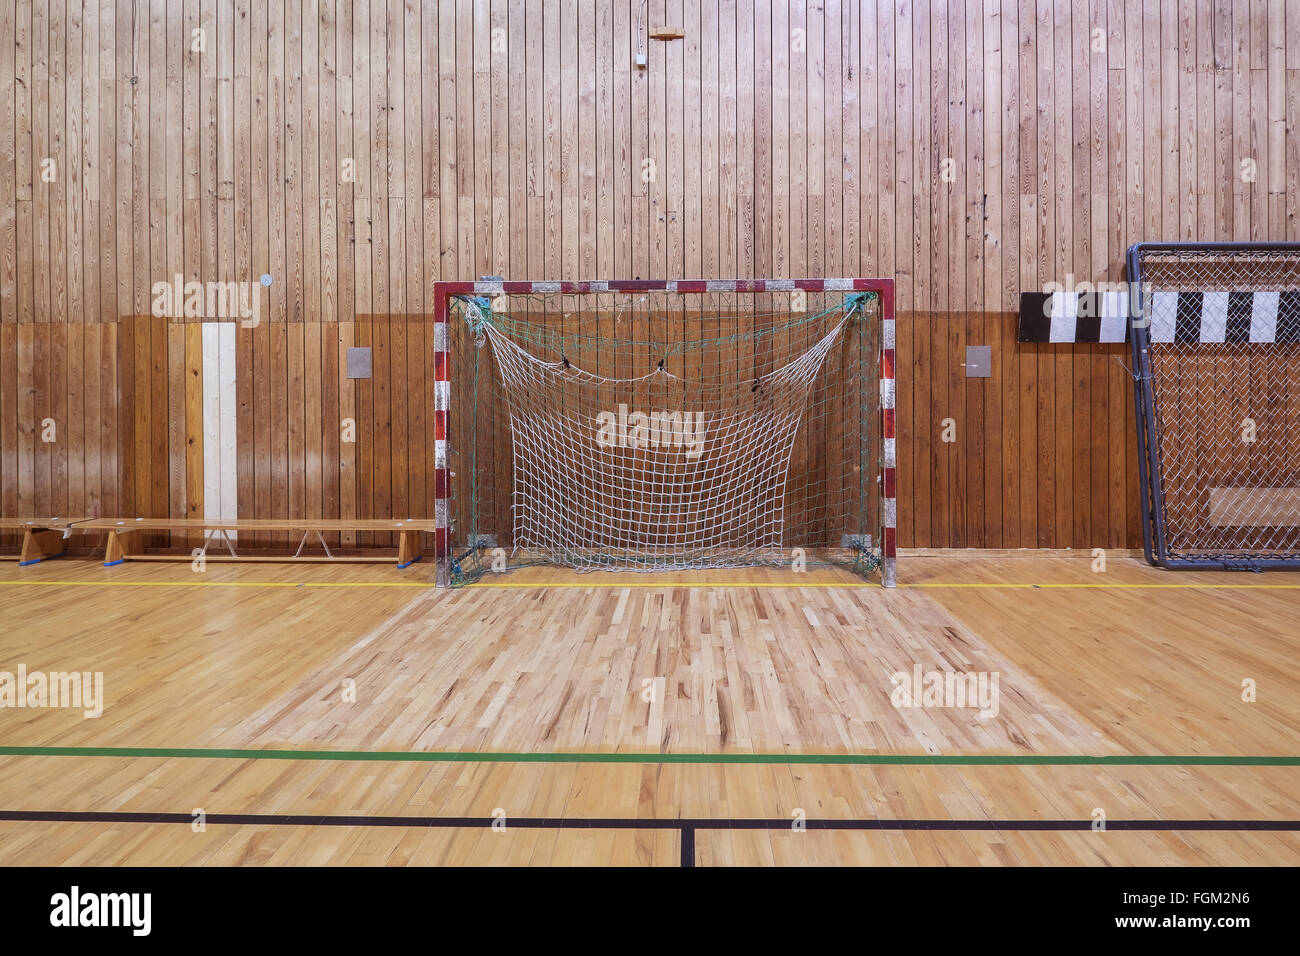 Old and worn indoor soccer gymhall - Stock Image